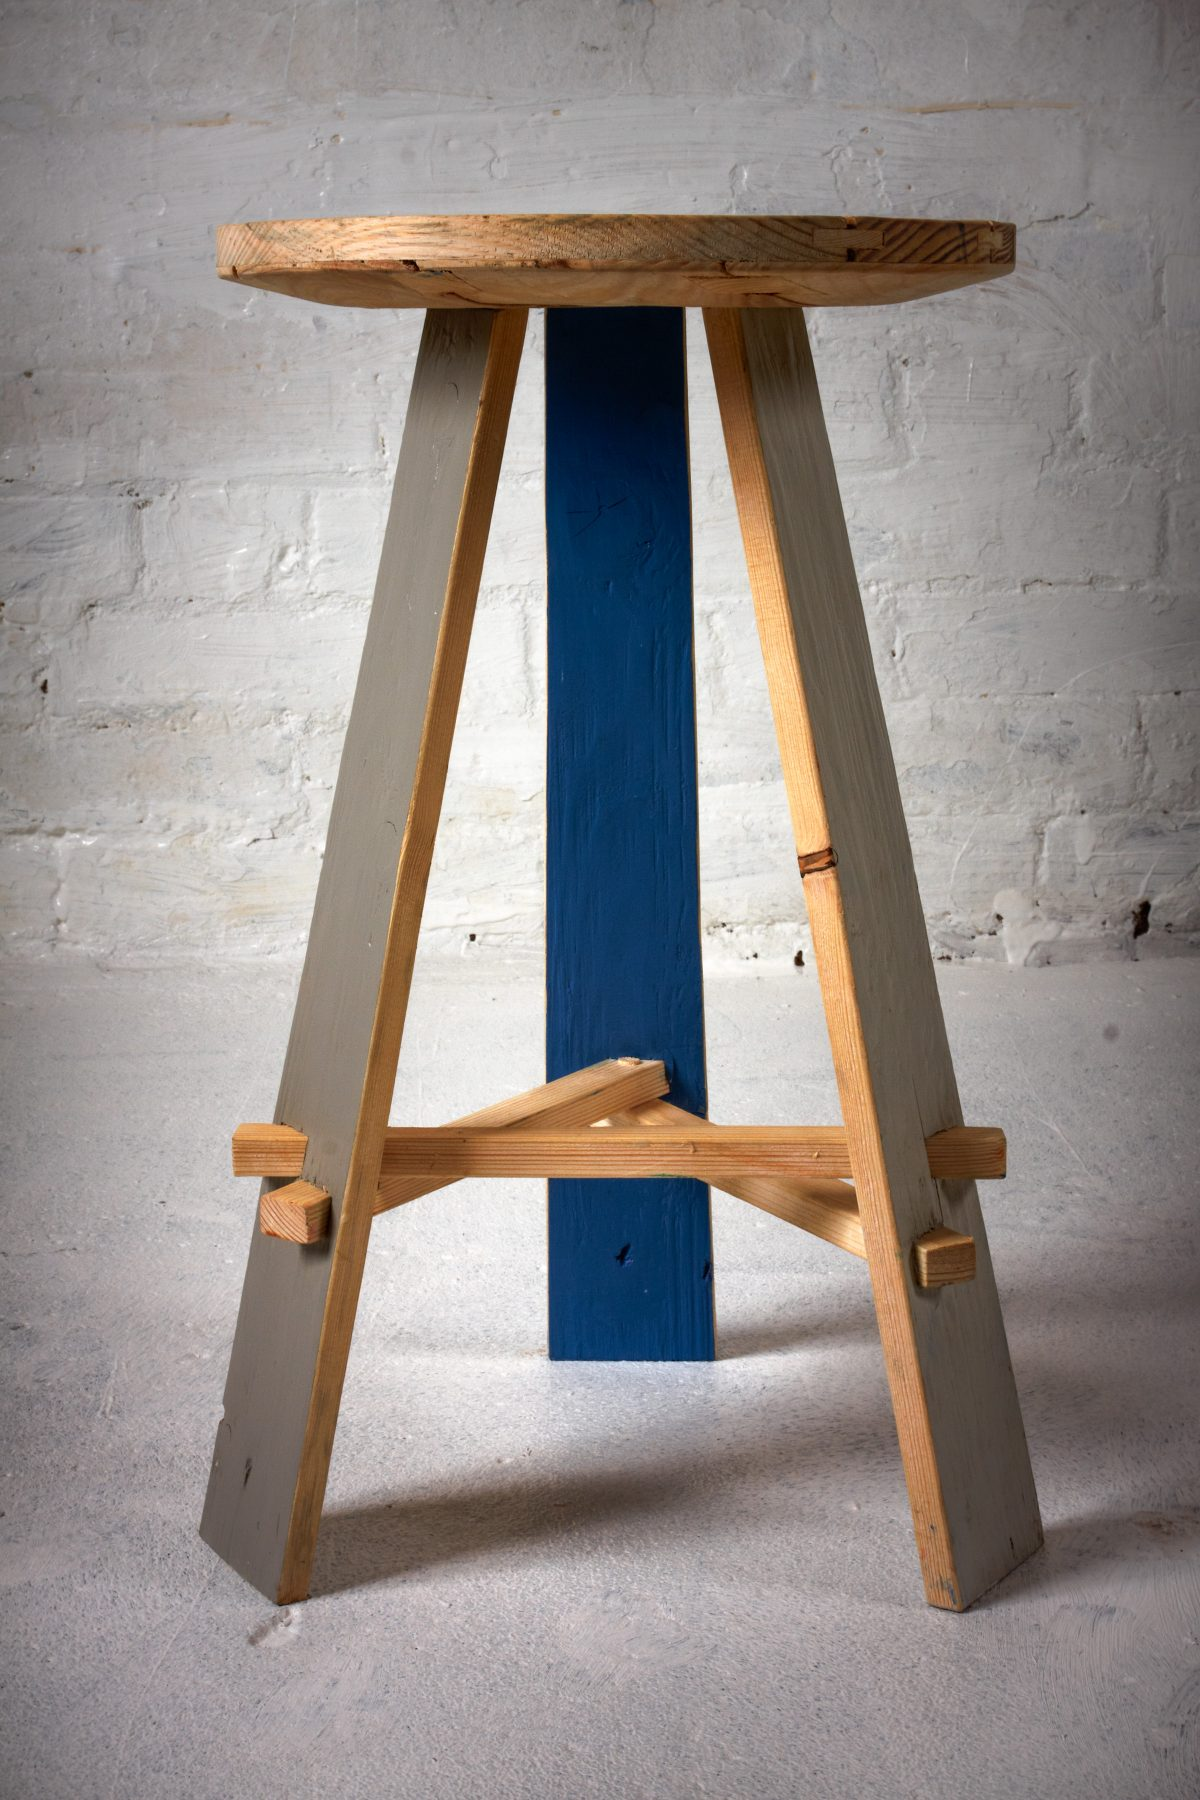 Jan Hendzel Studio gowlett stool